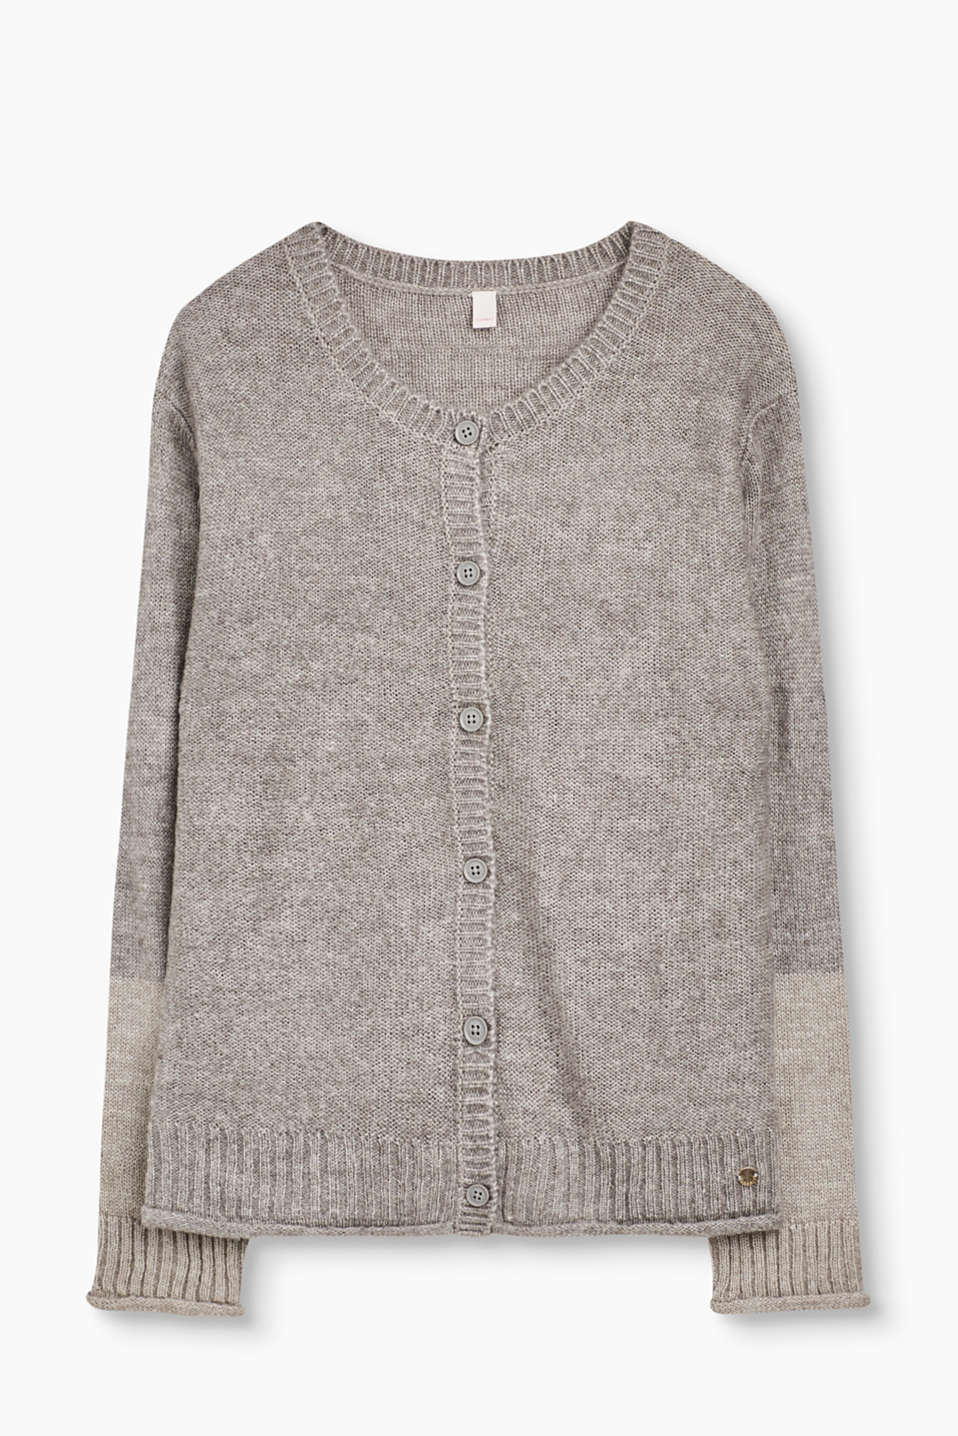 Esprit - Basic cardigan with a button placket